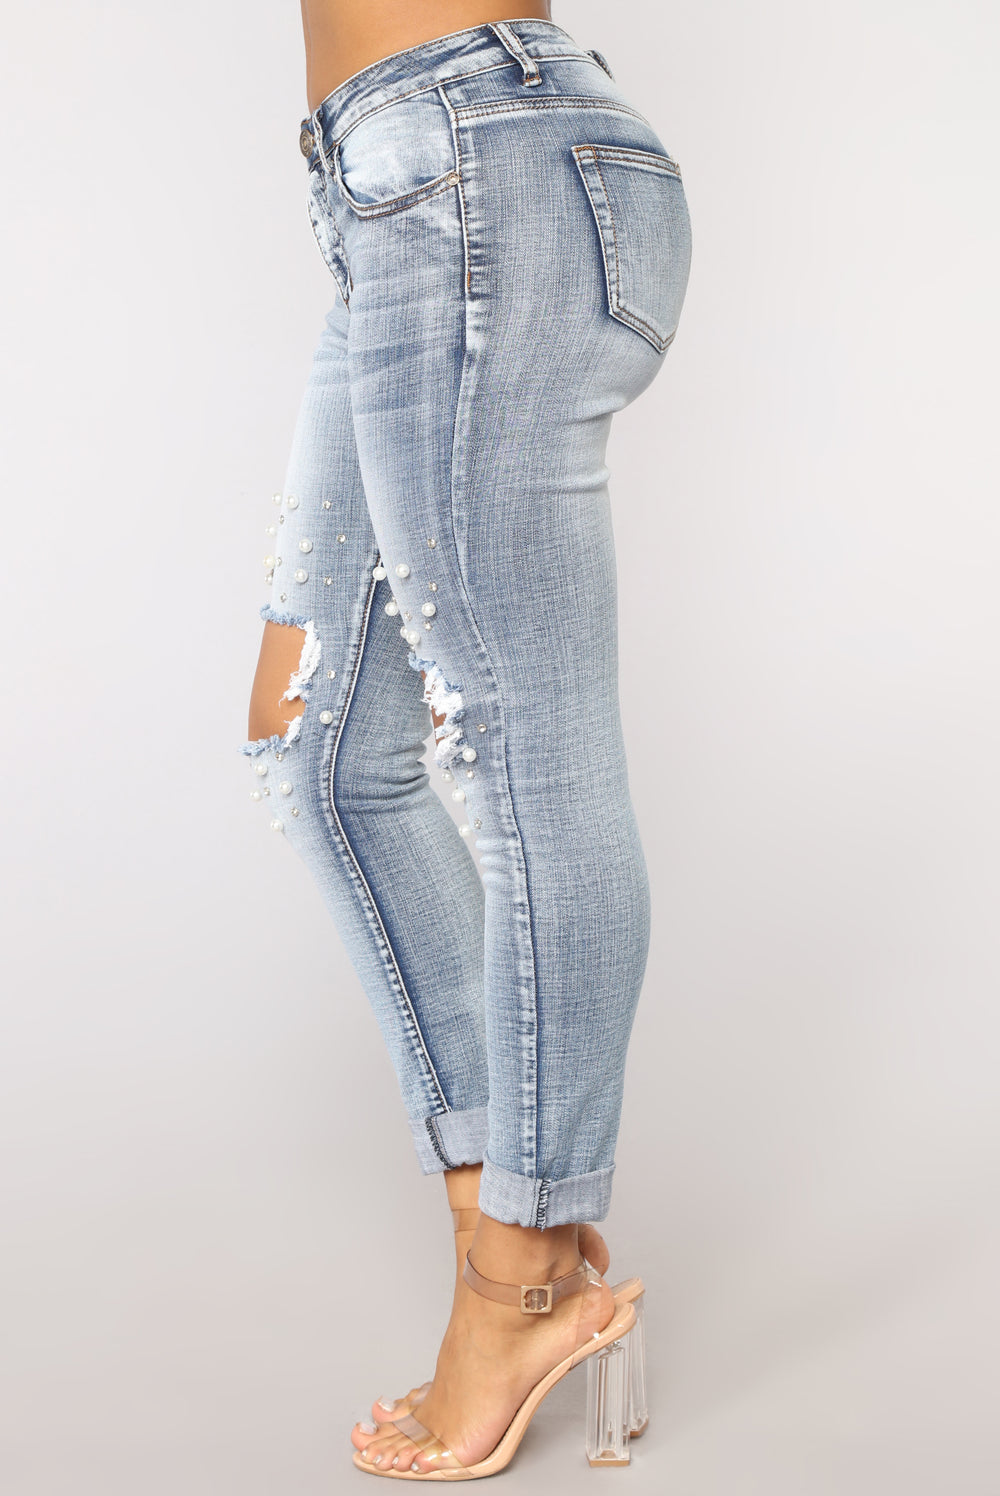 Back In Time Ankle Jeans - Light Blue Wash